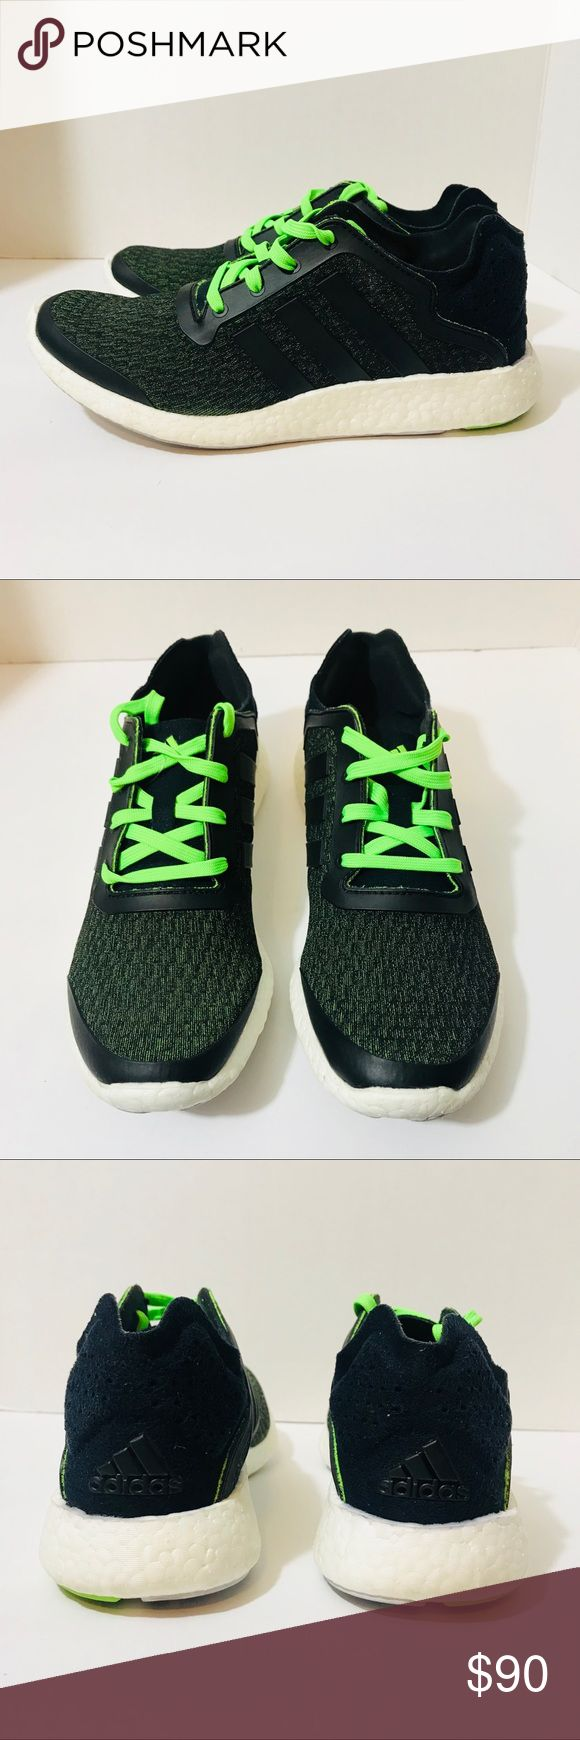 Mens Adidas Pure Boost Green Black Size 8 Mens adidas Pure Boost size 8 green and black in like new condition only worn once for a couple of hours adidas Shoes Sneakers